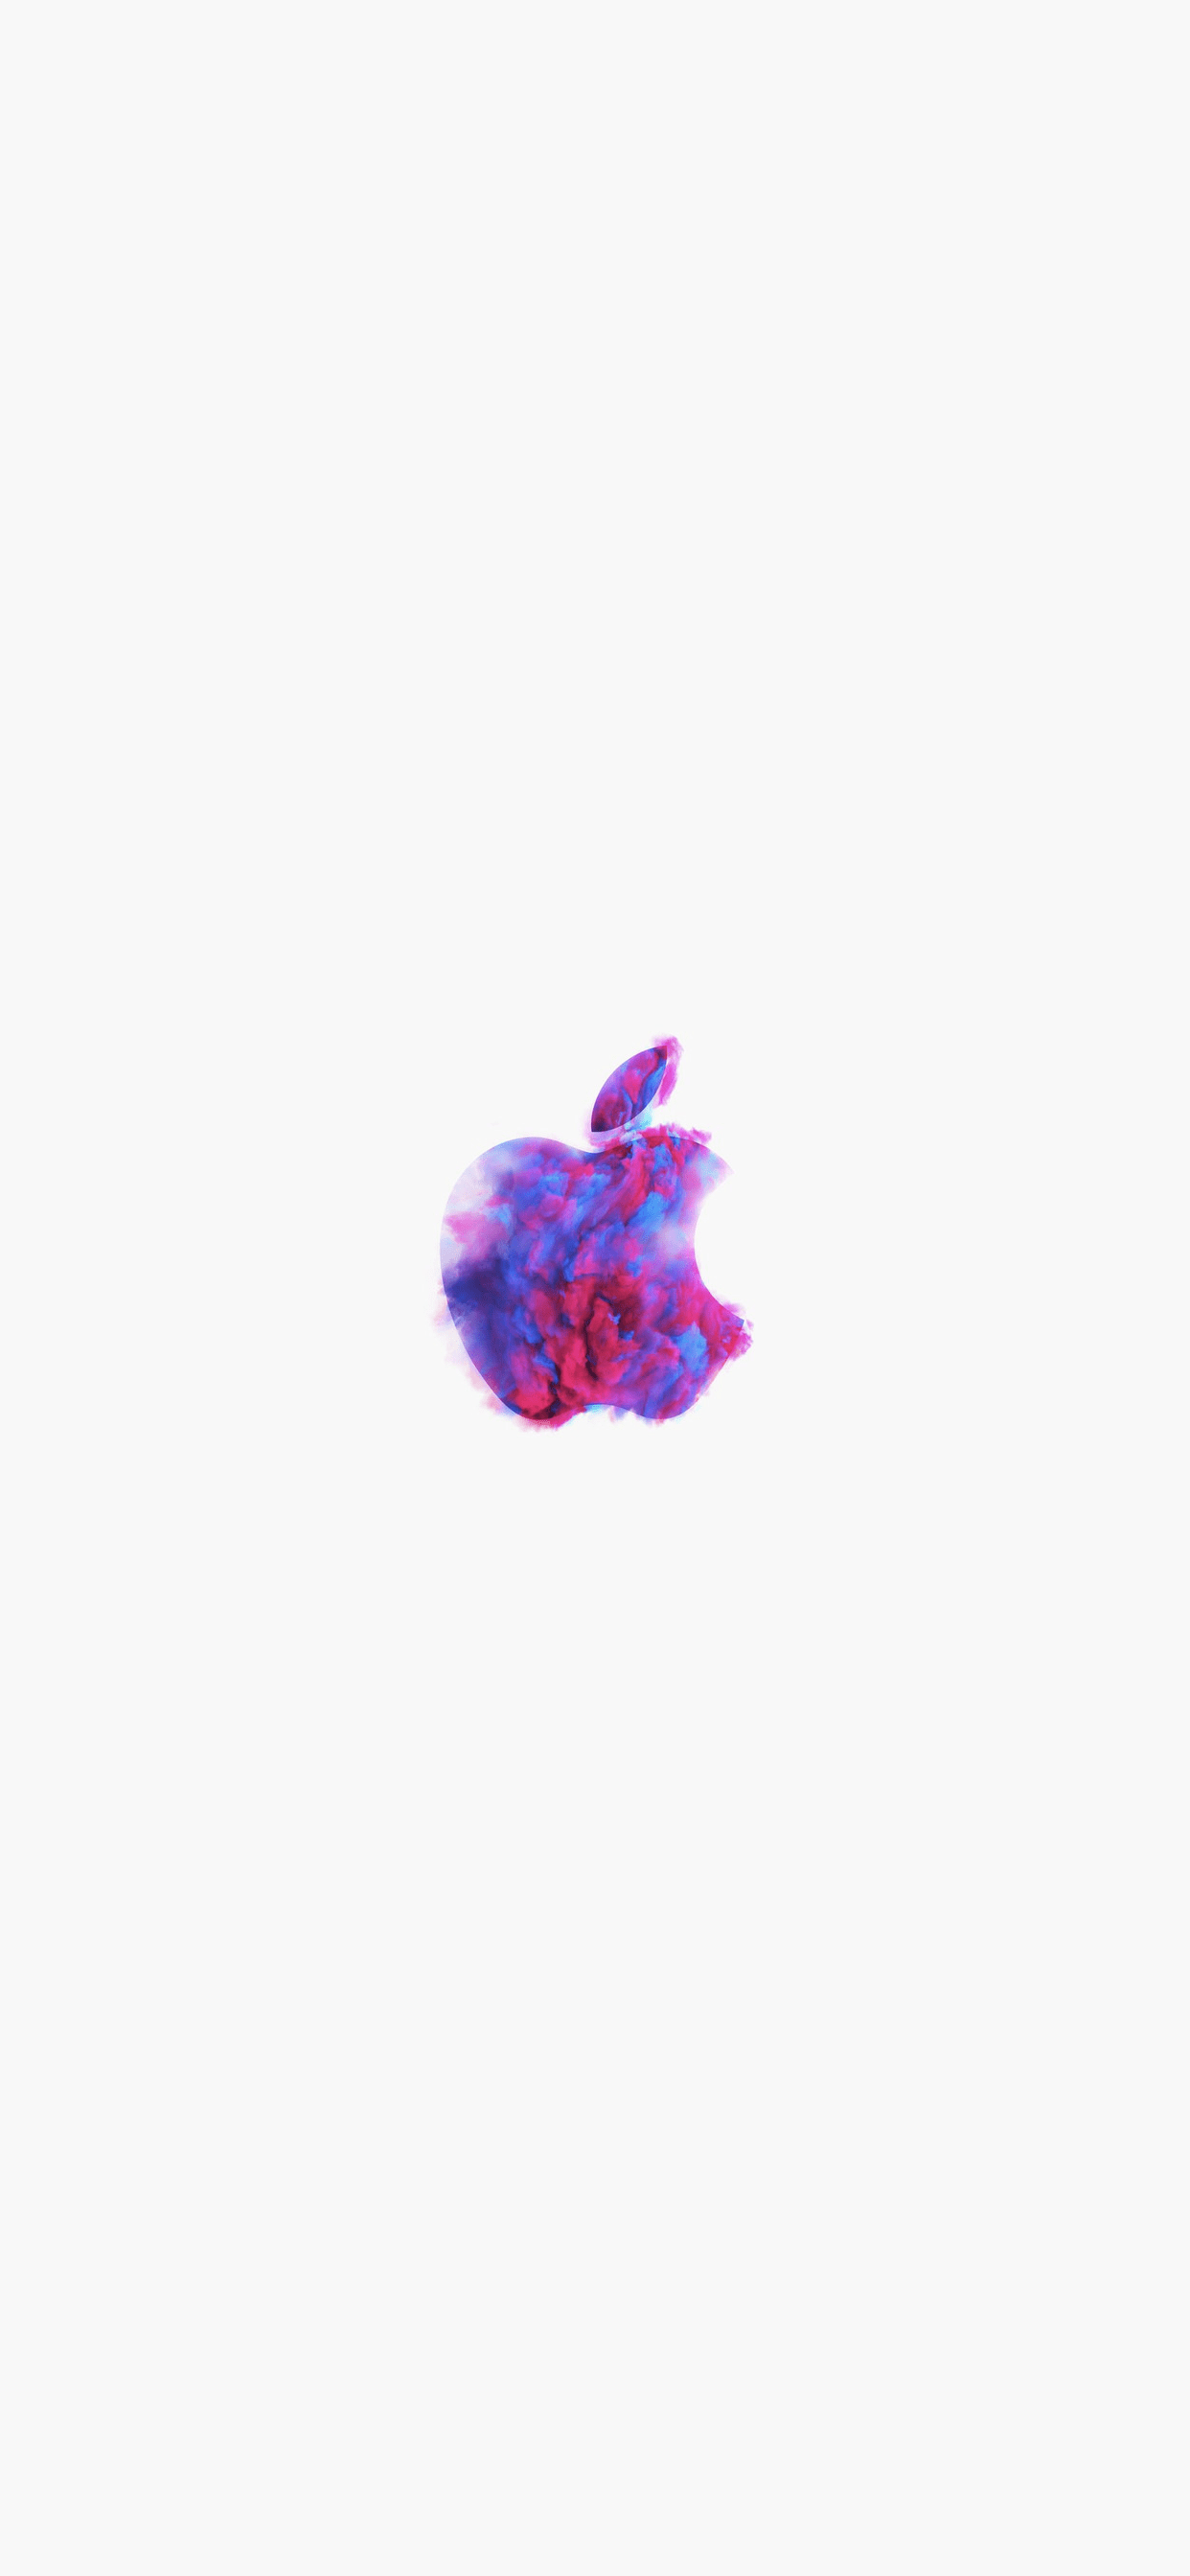 20 Apple logo